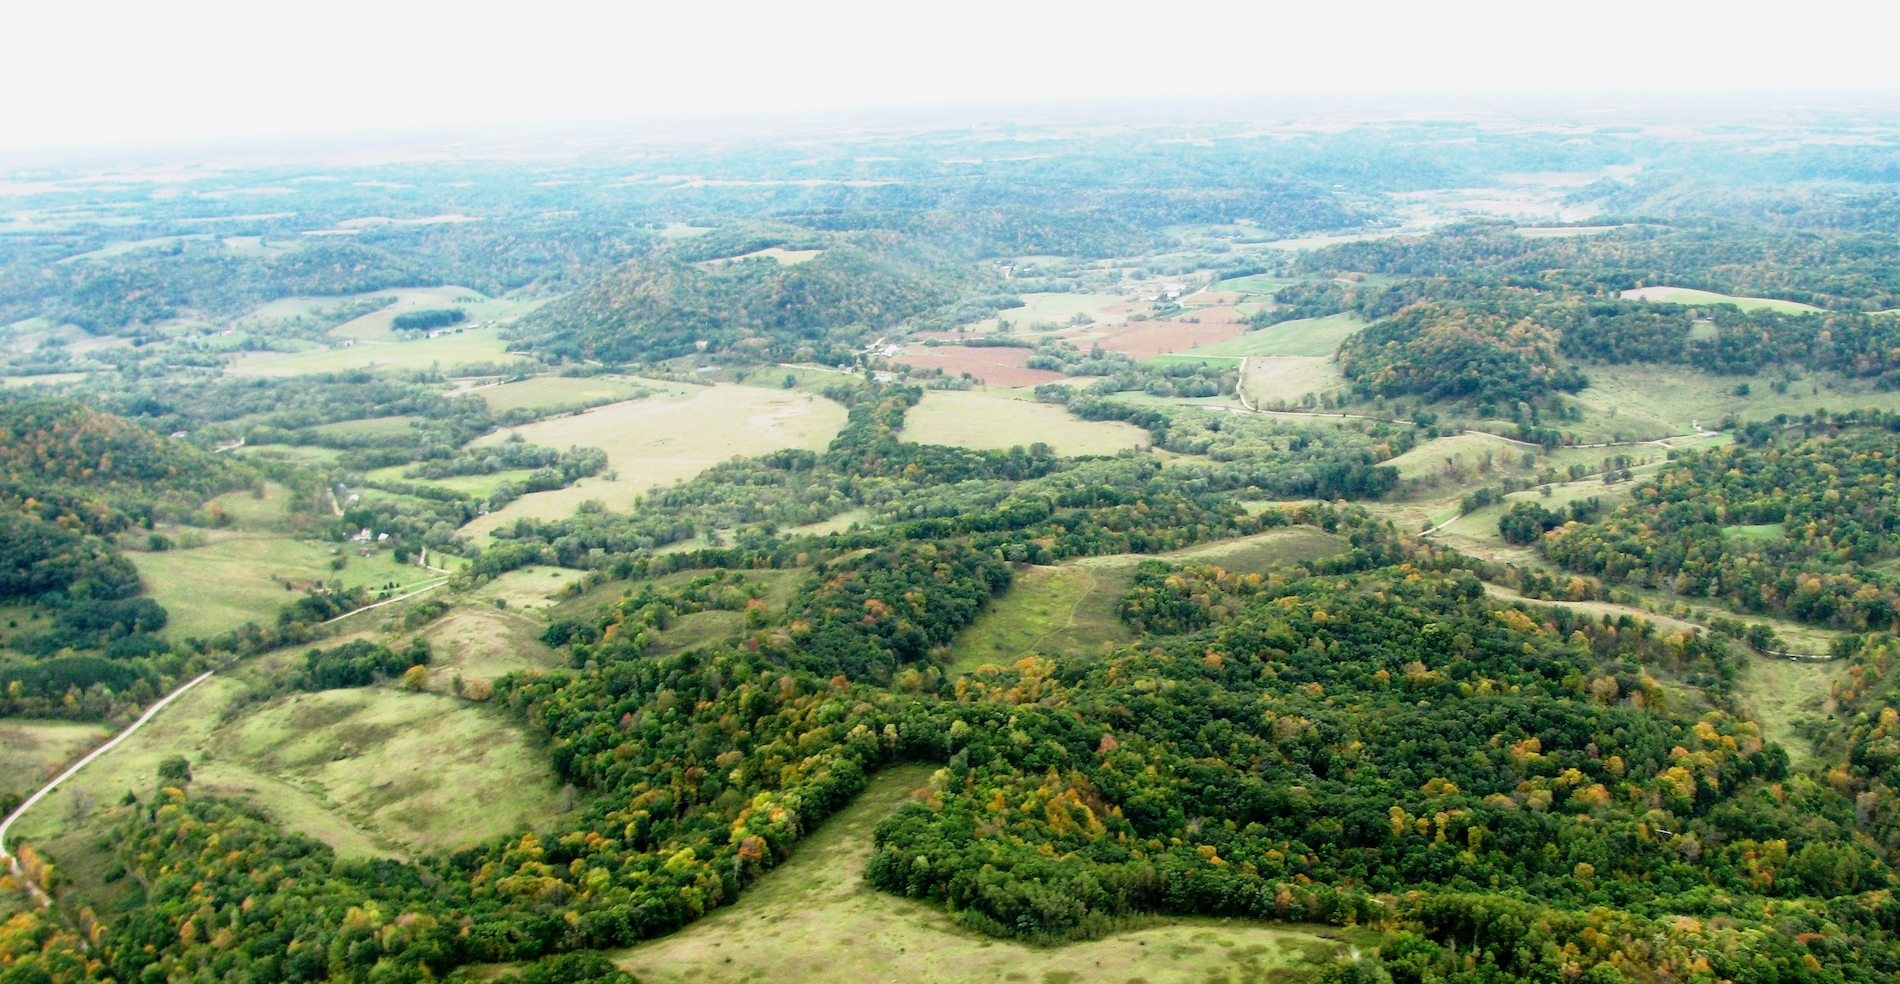 An aerial shot of Tunnelville Road in La Farge, WI—home to Organic Valley's national headquarters—shows the Driftless Area's characteristically hilly terrain